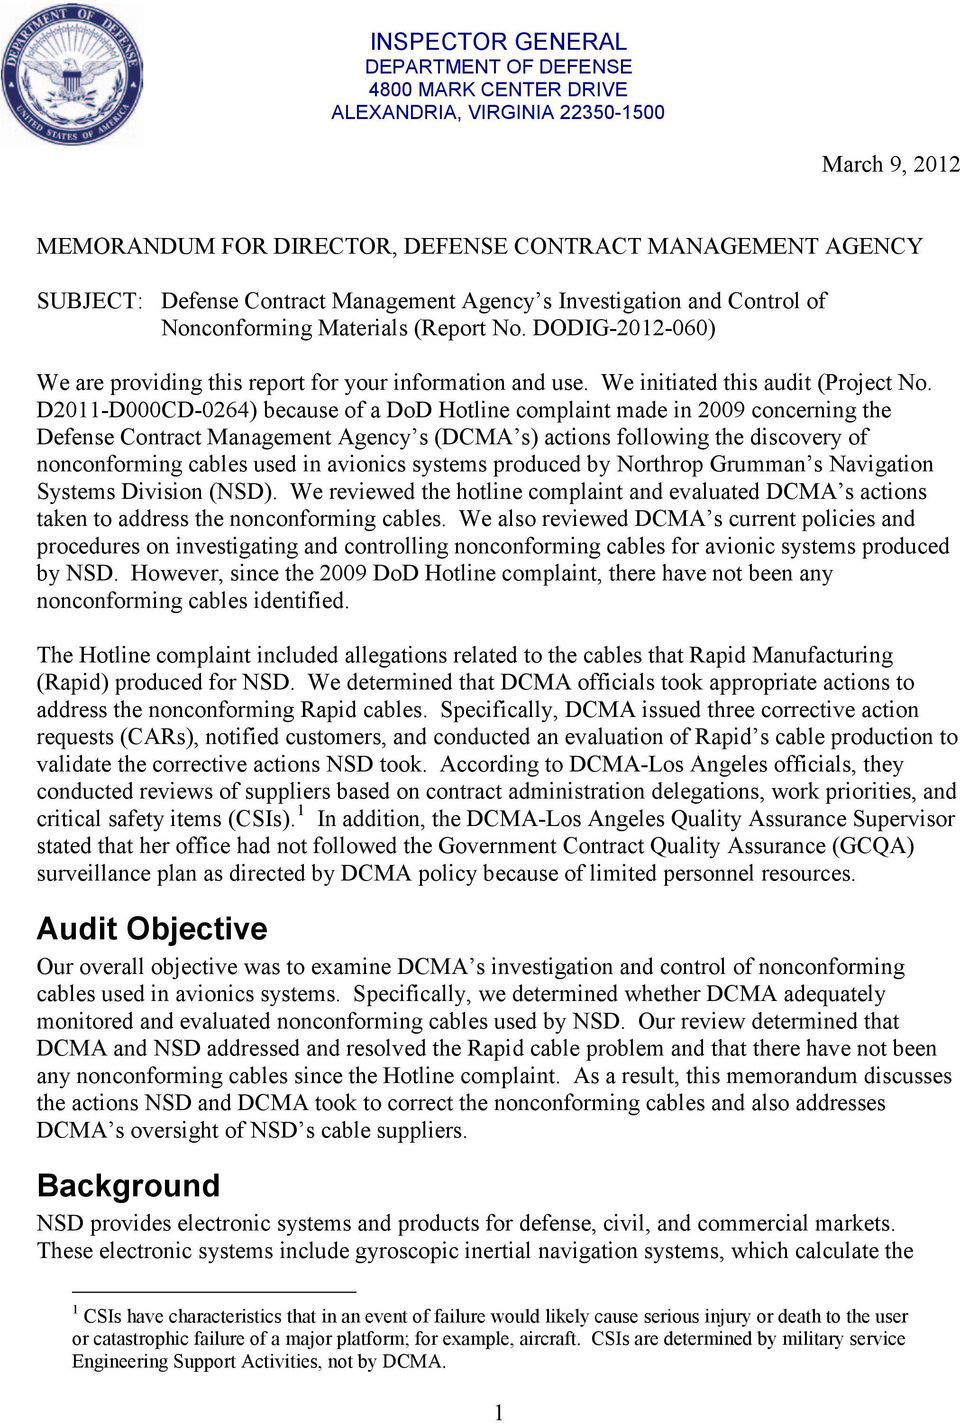 D2011-D000CD-0264) because of a DoD Hotline complaint made in 2009 concerning the Defense Contract Management Agency s (DCMA s) actions following the discovery of nonconforming cables used in